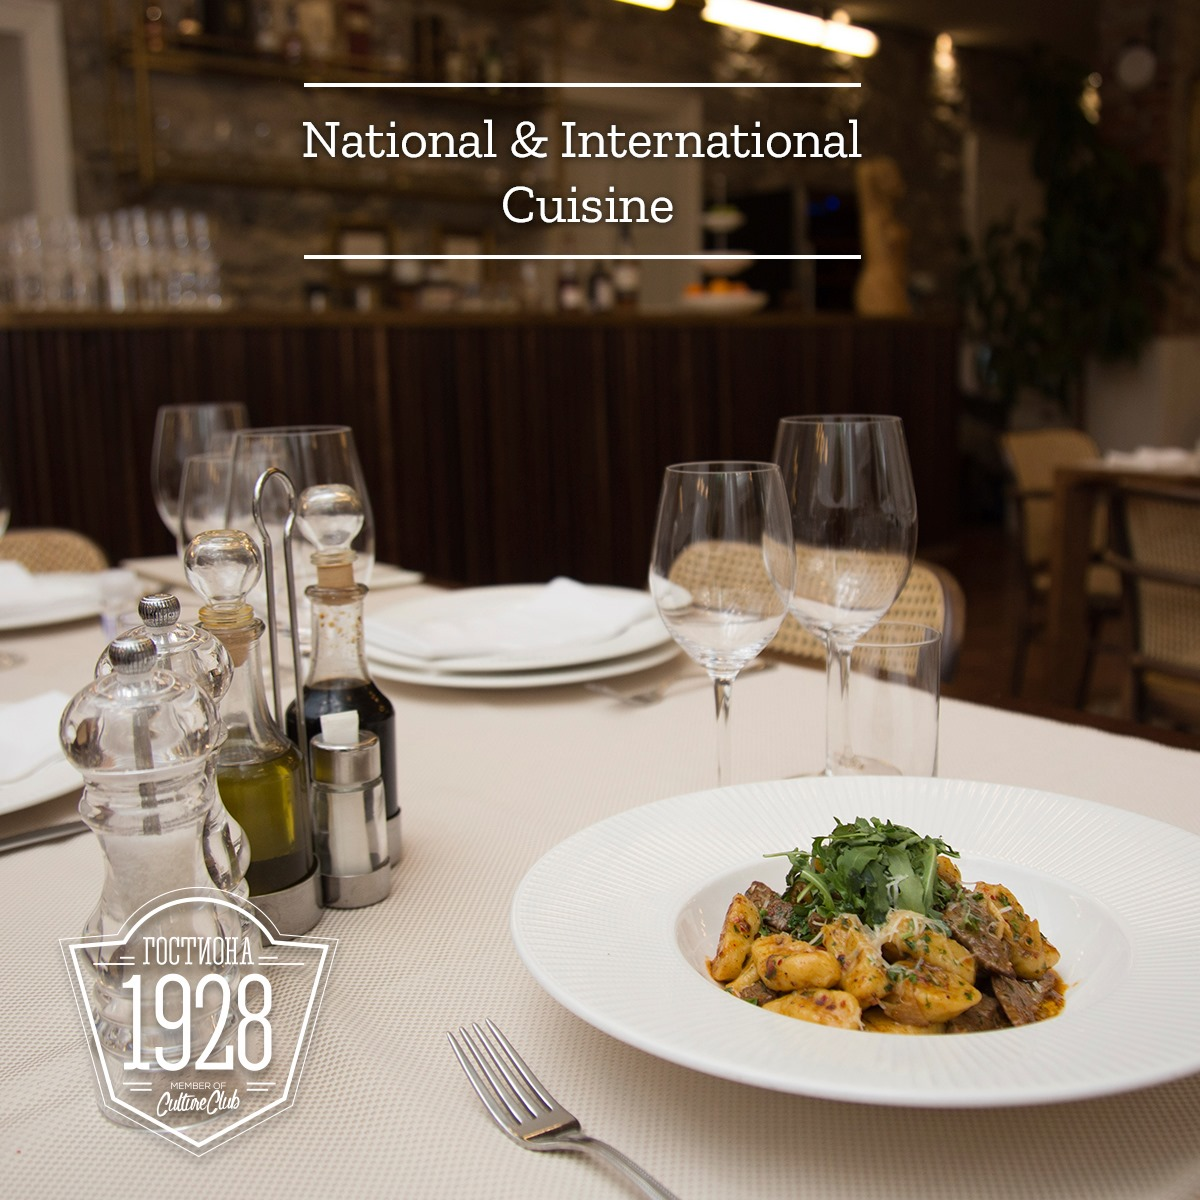 National & International cuisine